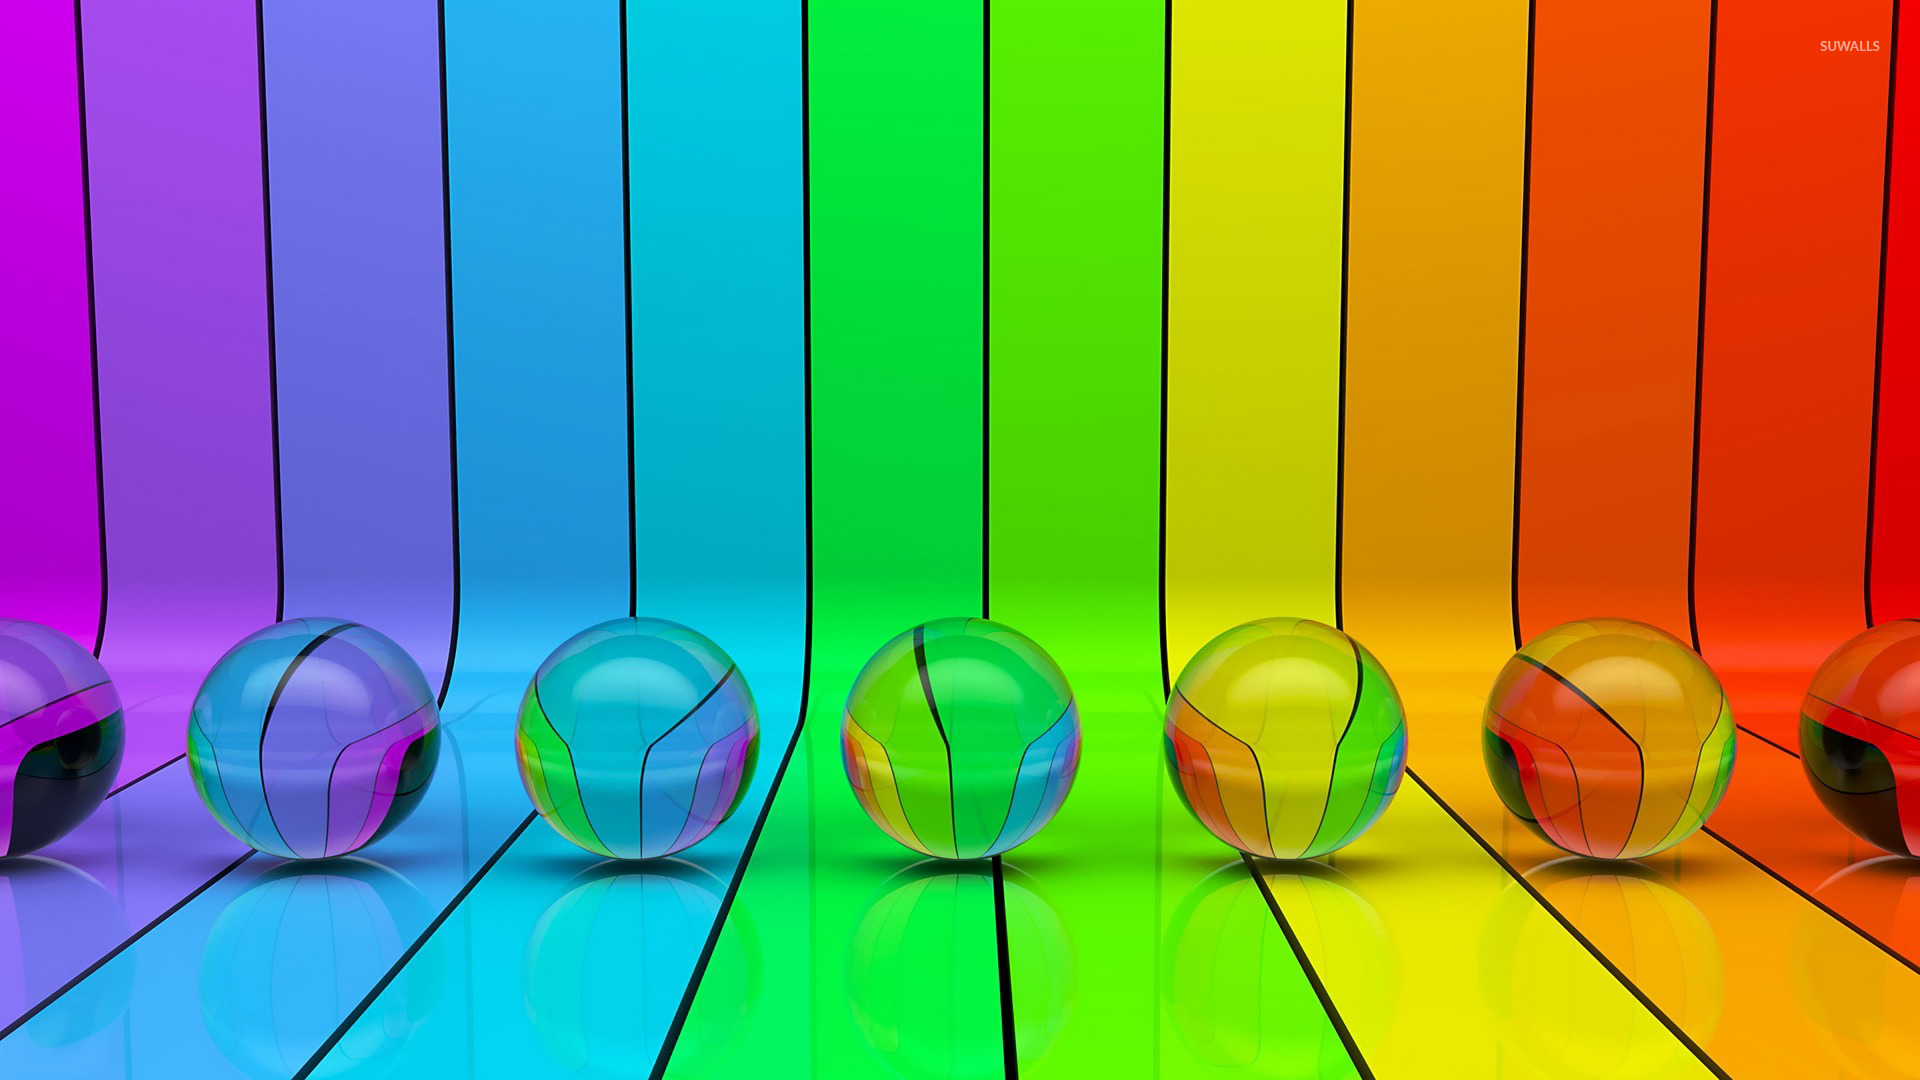 Transparent Spheres On Rainbow Stripes Wallpaper 3d HD Wallpapers Download Free Images Wallpaper [1000image.com]